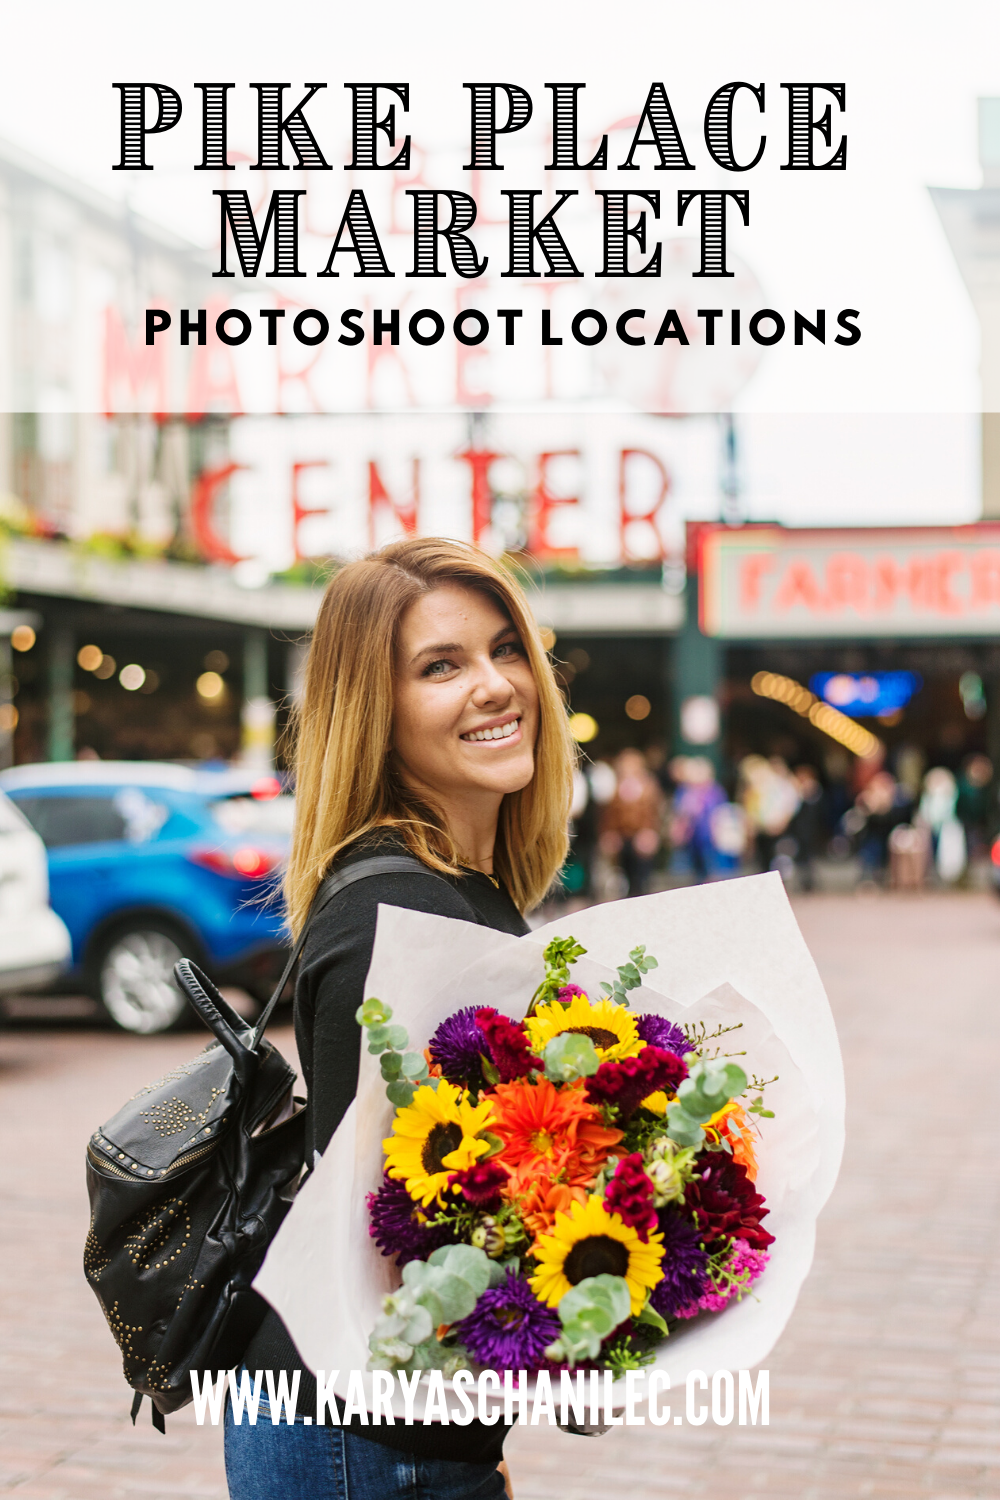 Pike Place Market Photoshoot